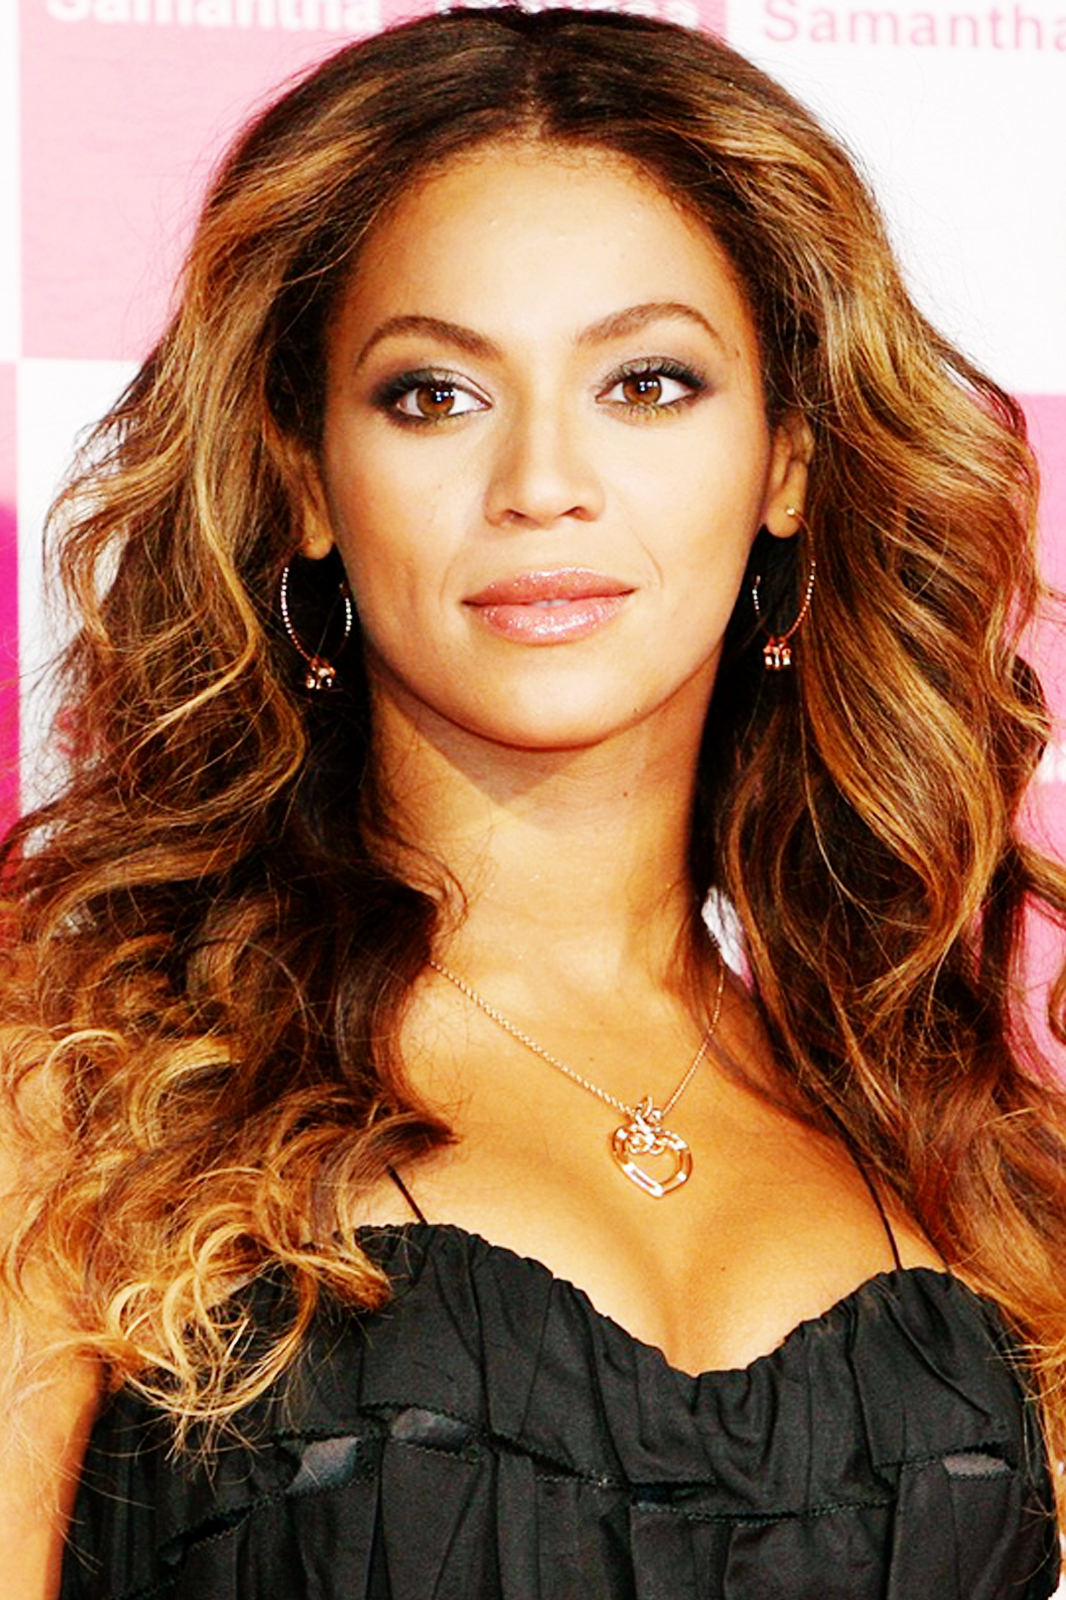 Beyonce Hot Pictures | Beyonce Wallpapers Beyonce Knowles